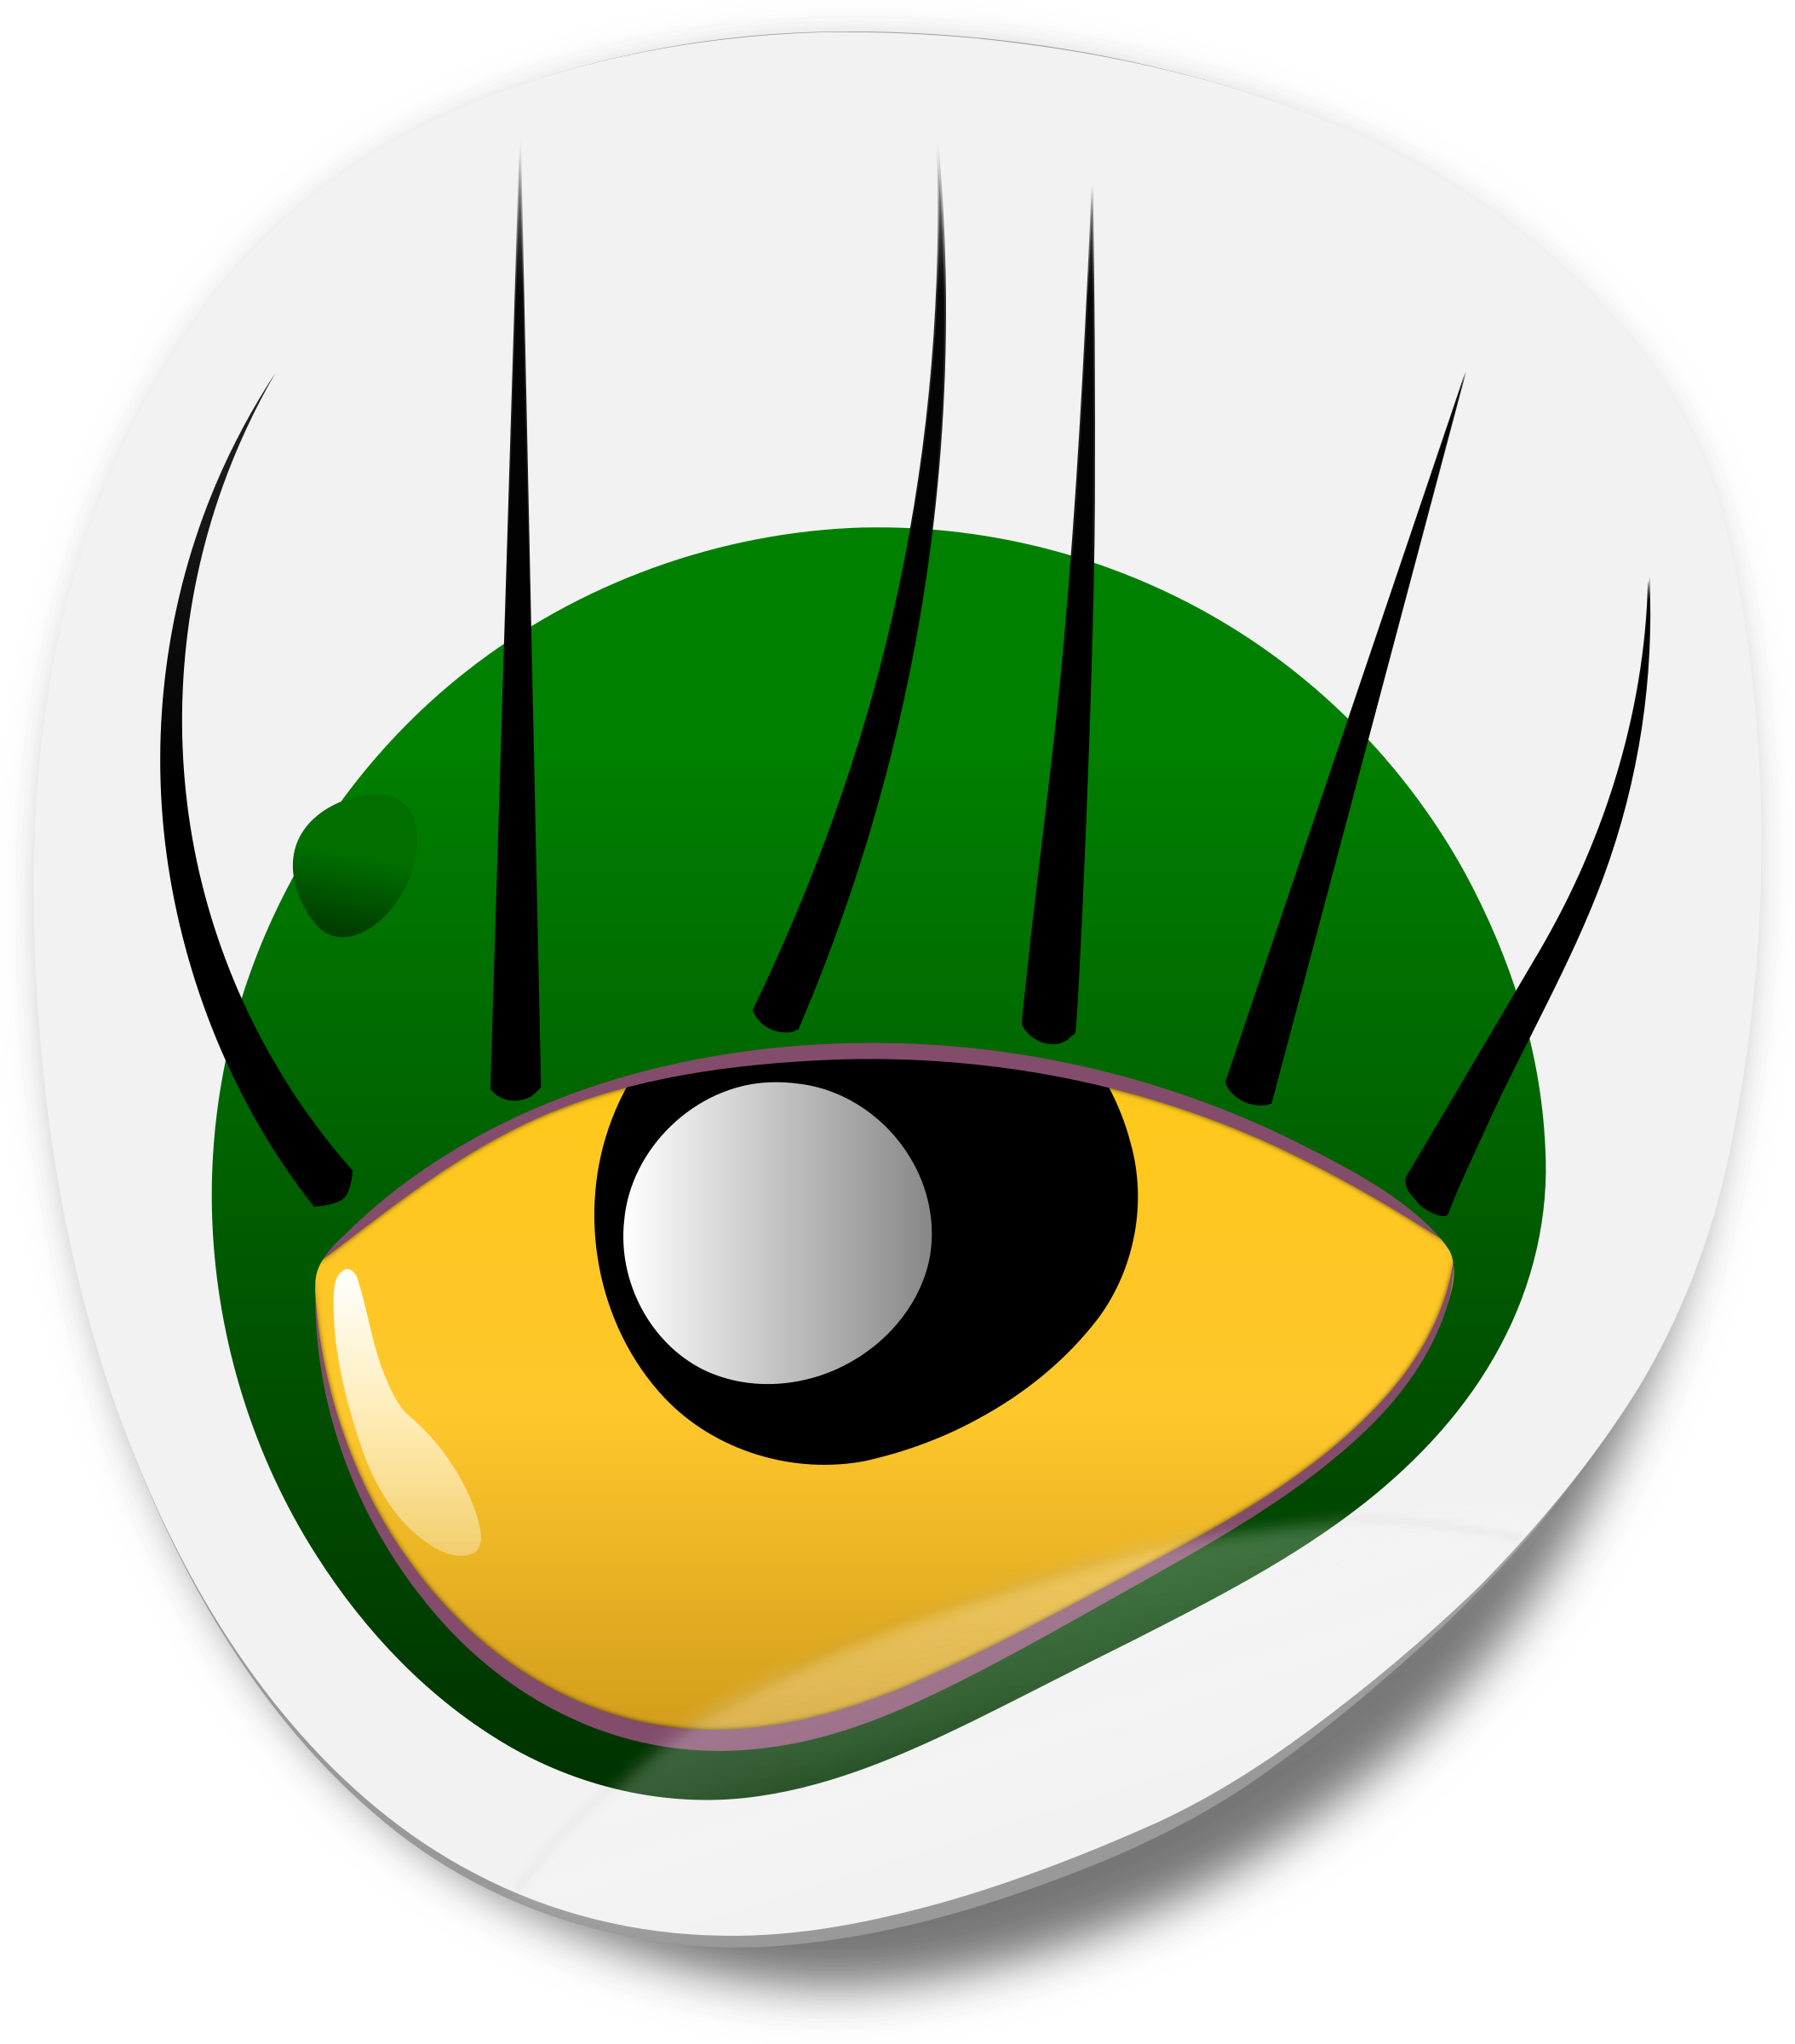 Monster Eye Sticker 1 by dogface_jim